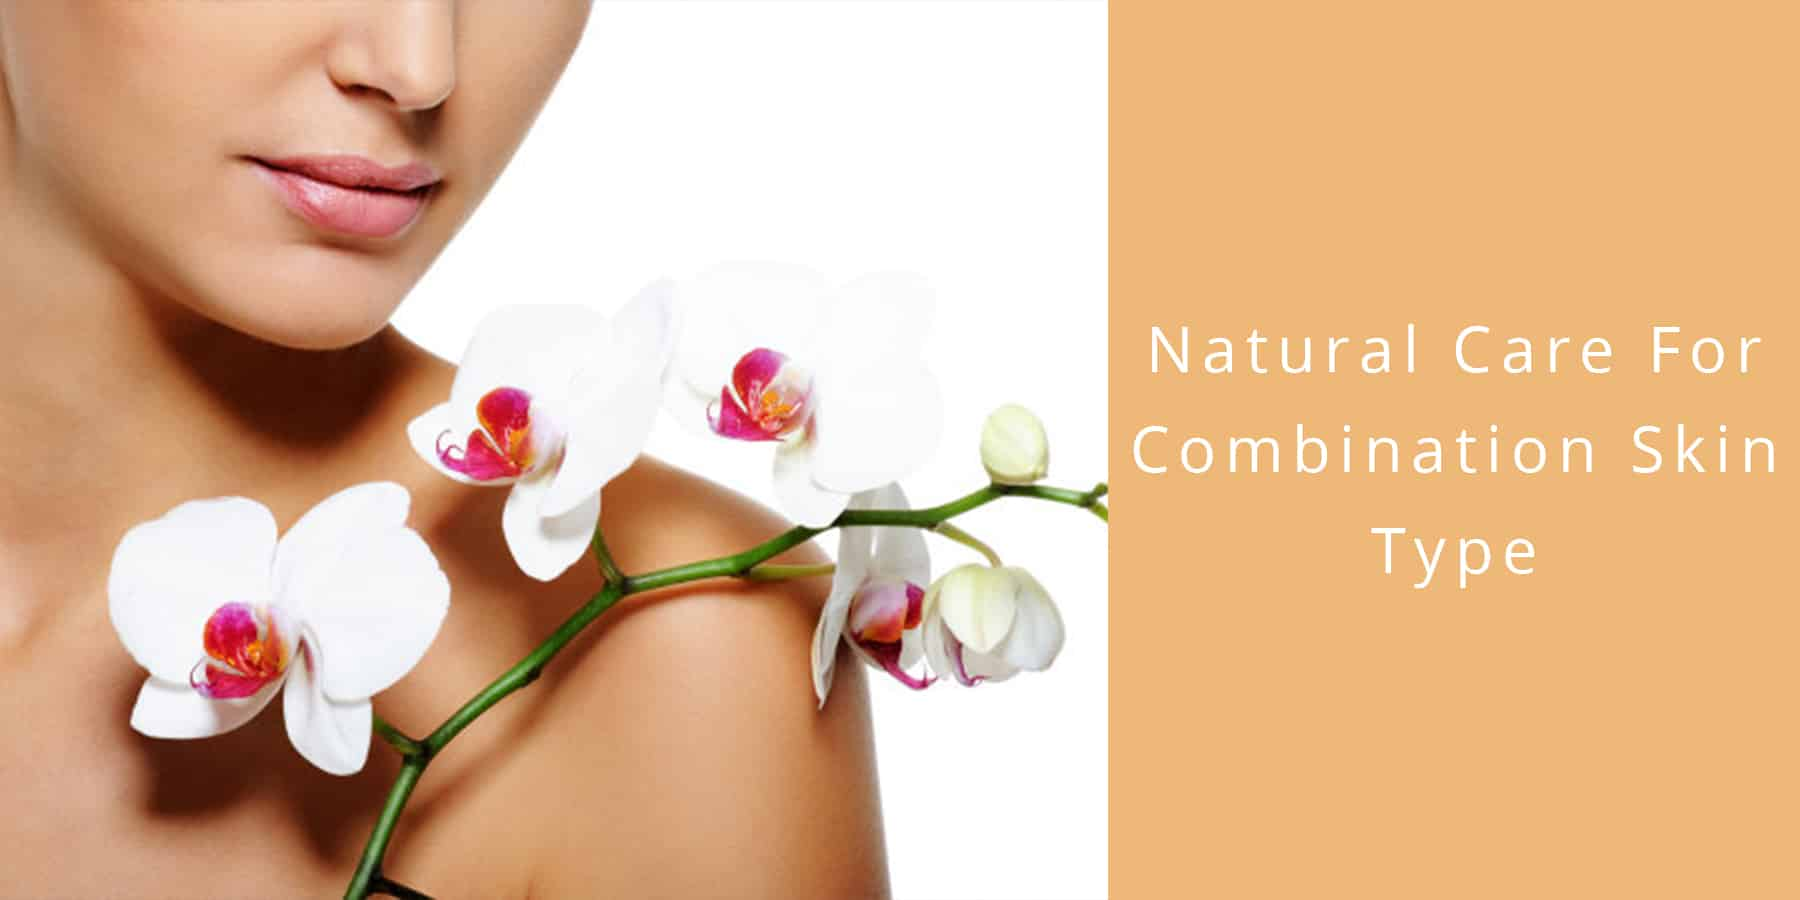 Natural Care For Combination Skin Type